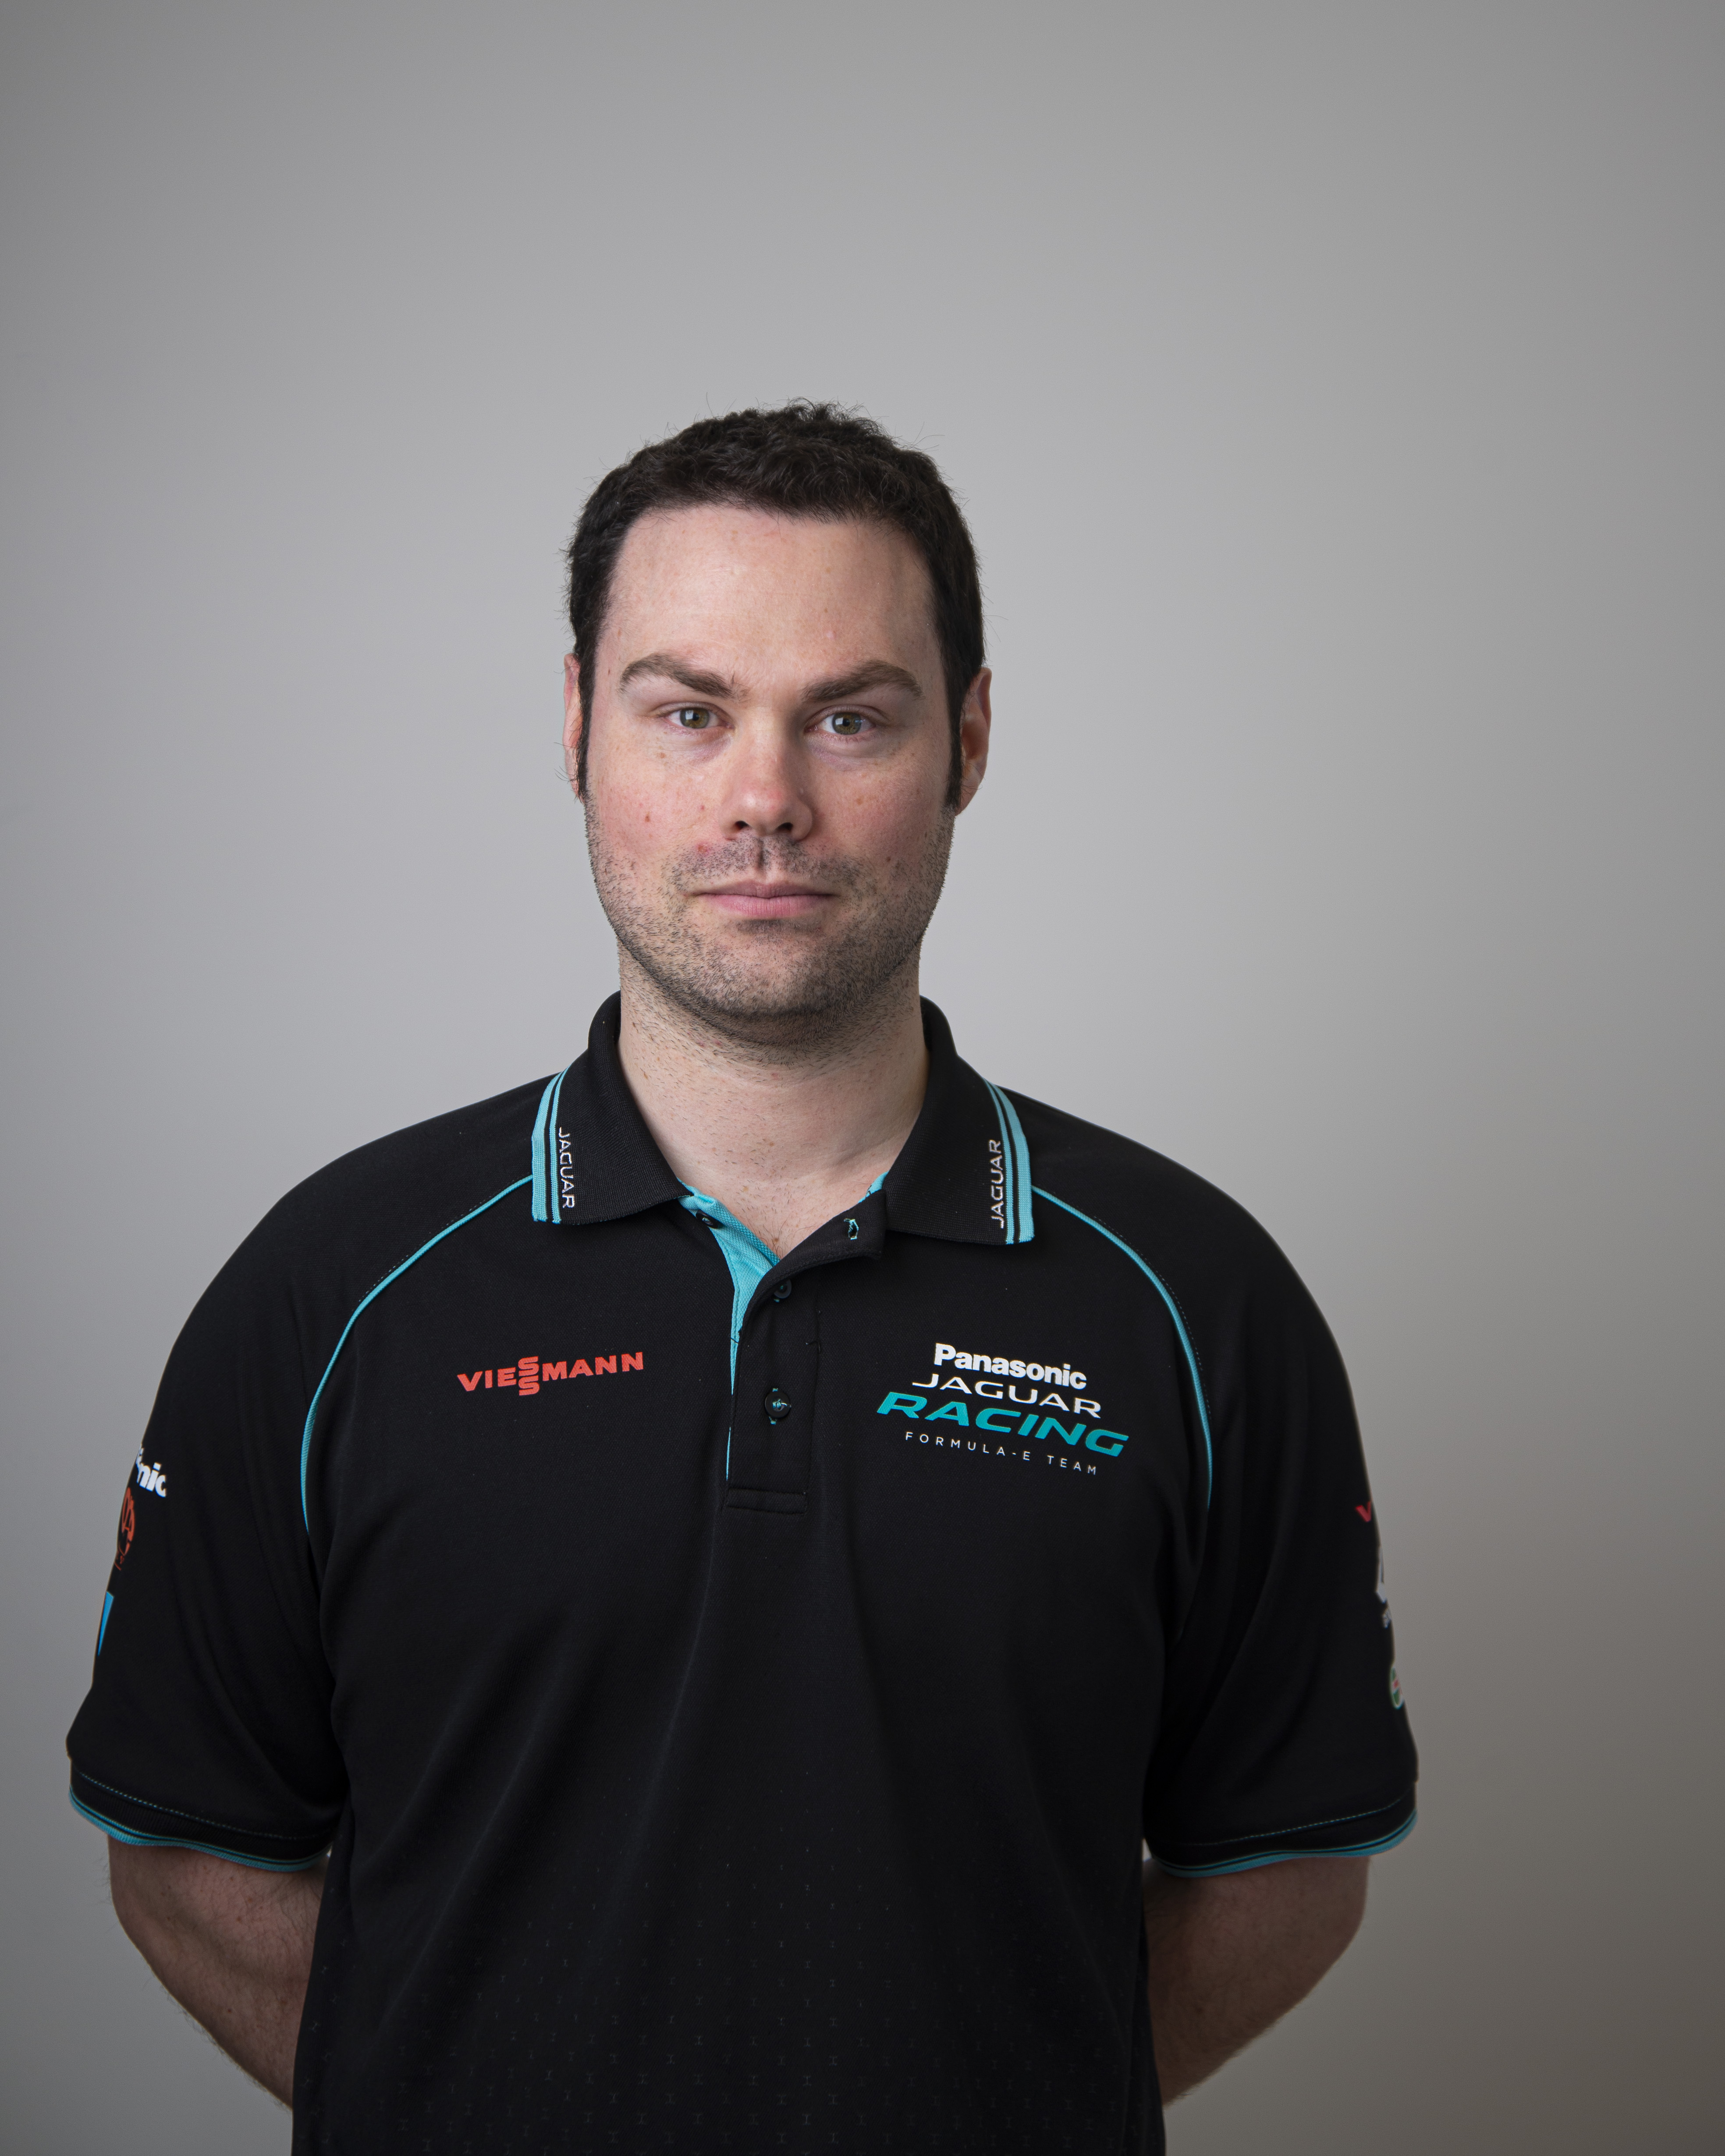 MICHAEL WINGFIELD - PARTS CONSULTANT